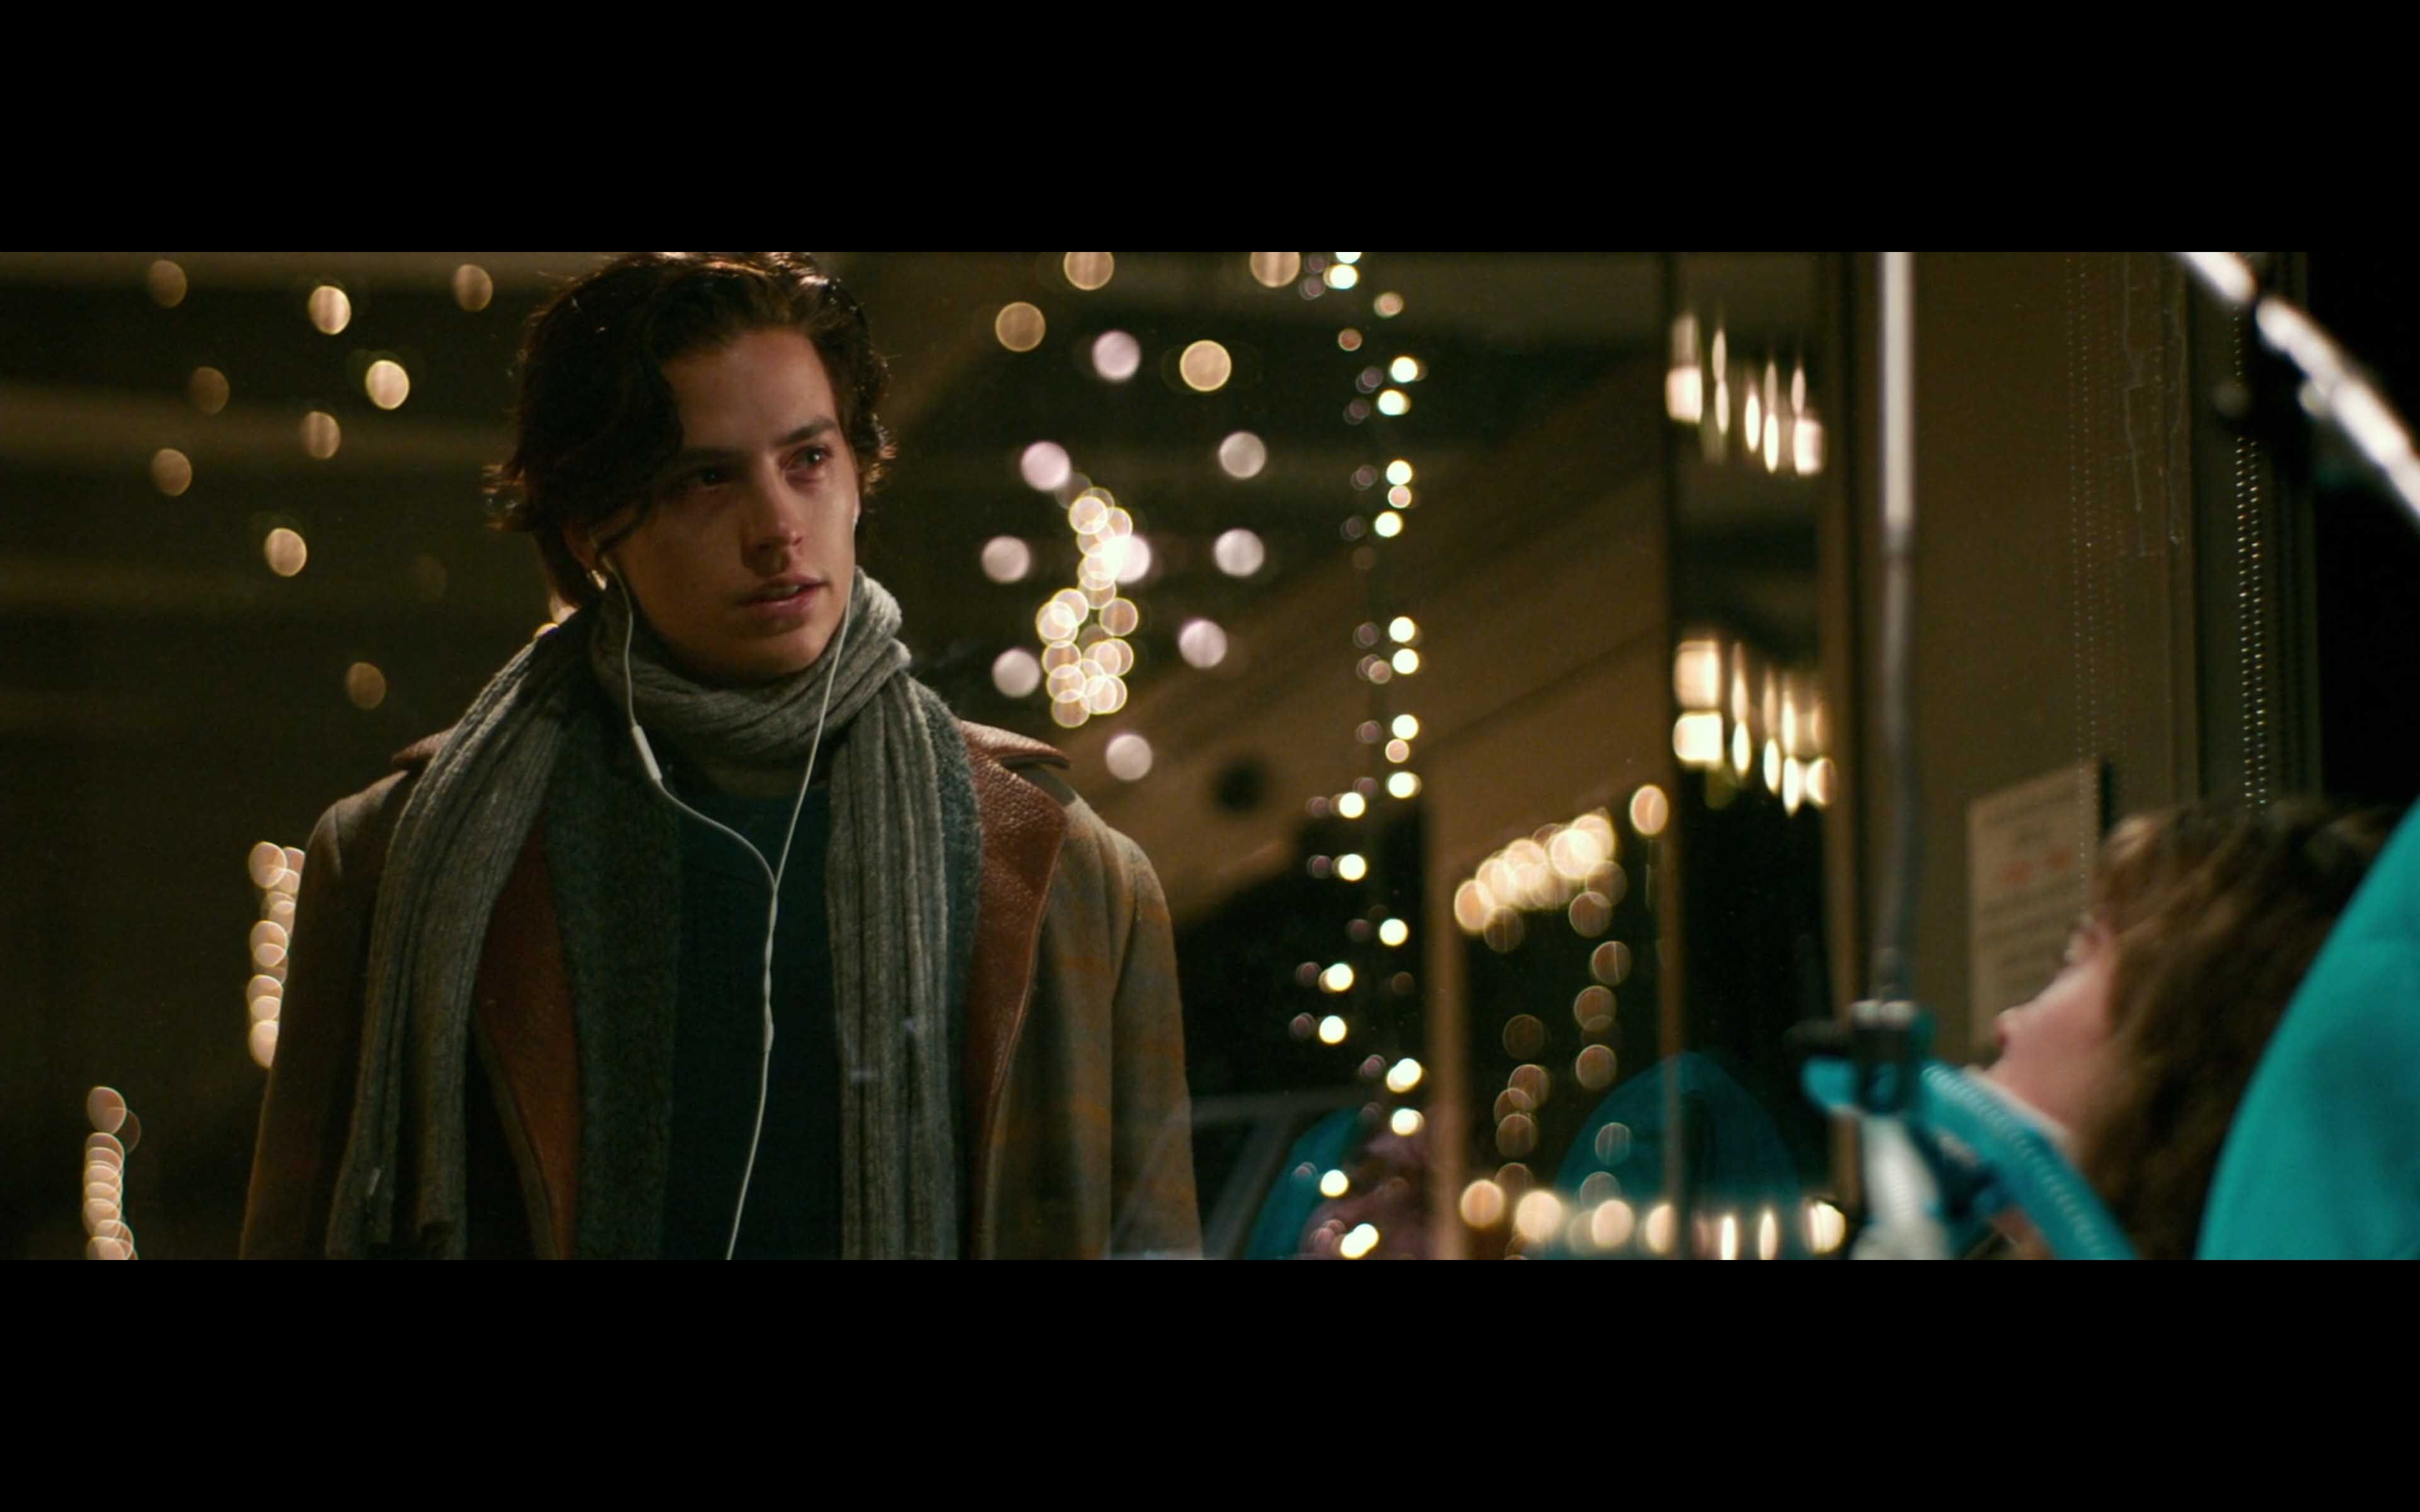 Five Feet Apart 2019 Cute Couple Videos Cole Sprouse Film Aesthetic